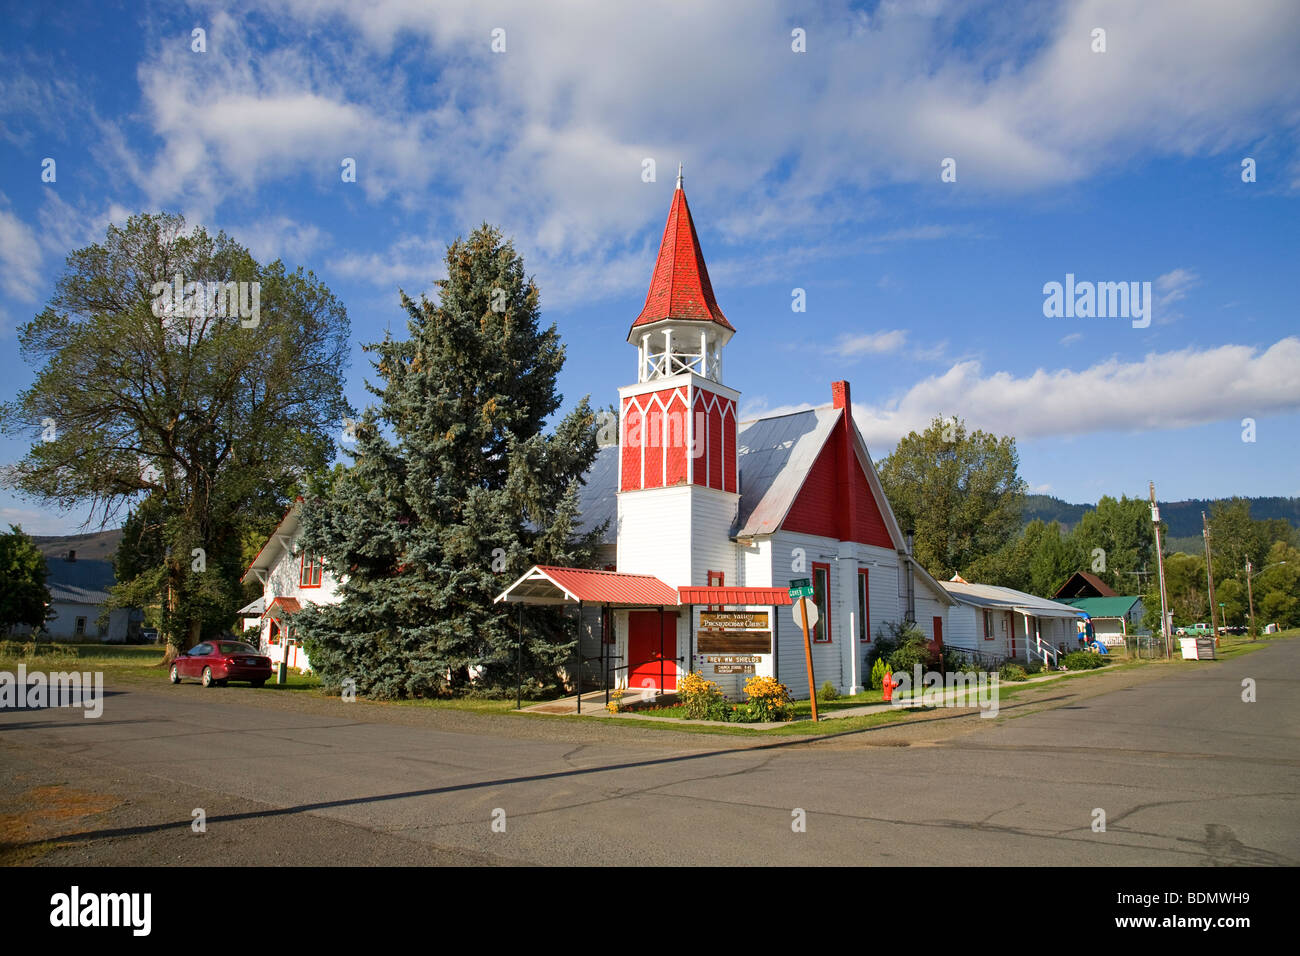 A small, 100 year old community church in Halfway, Oregon - Stock Image